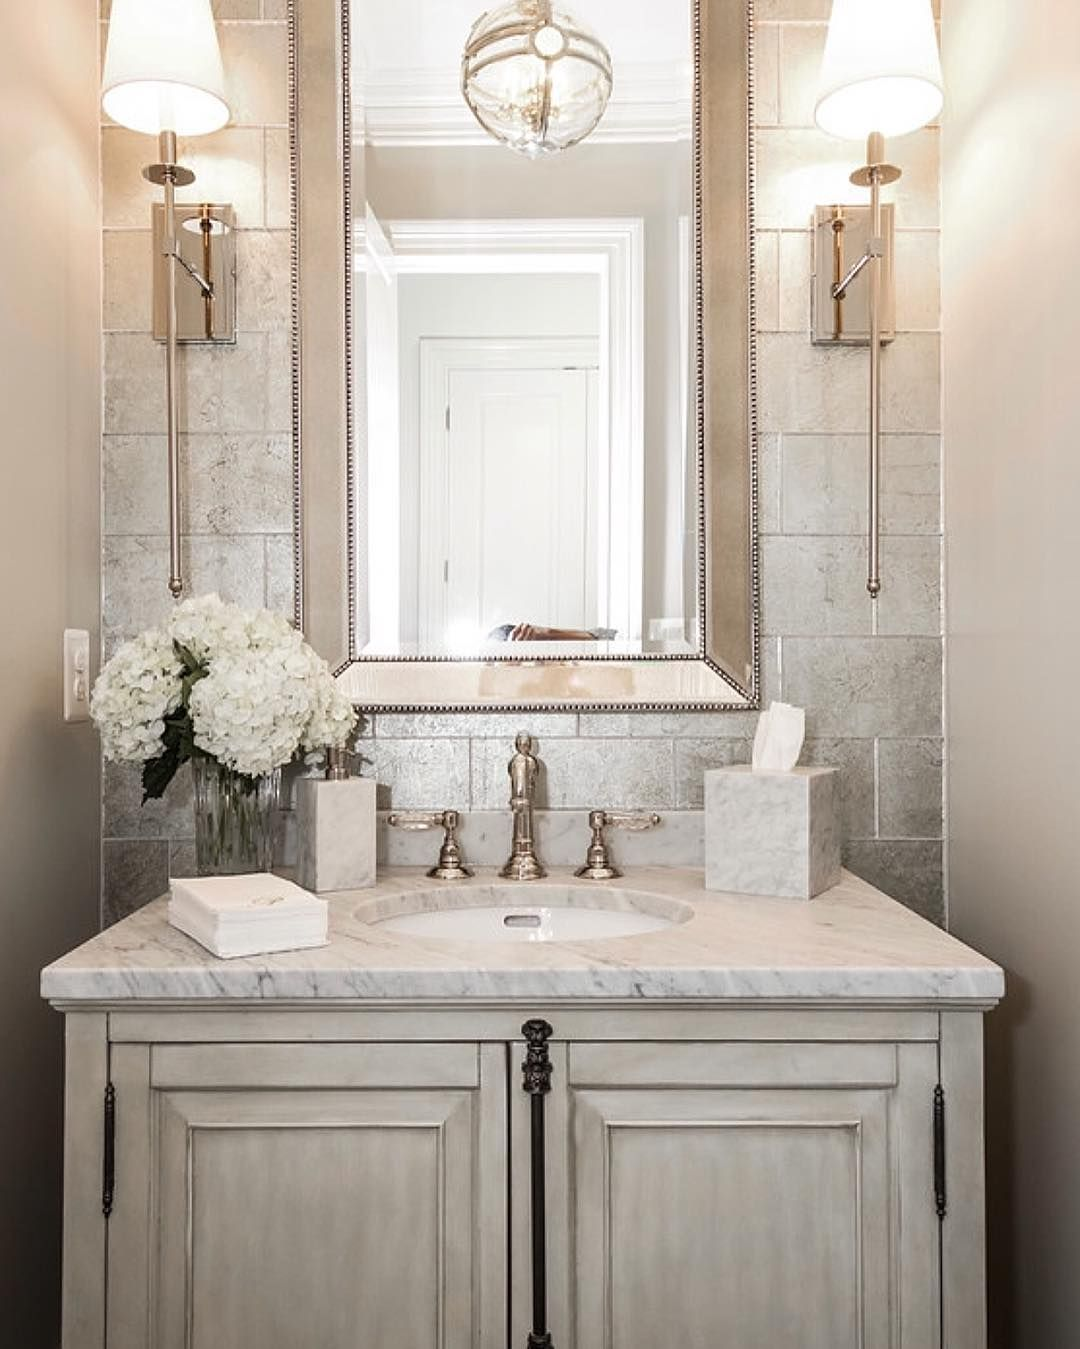 Sets bathroom vanity ari kitchen second - Such An Elegant Powder Room By Castlwood Custom Builders